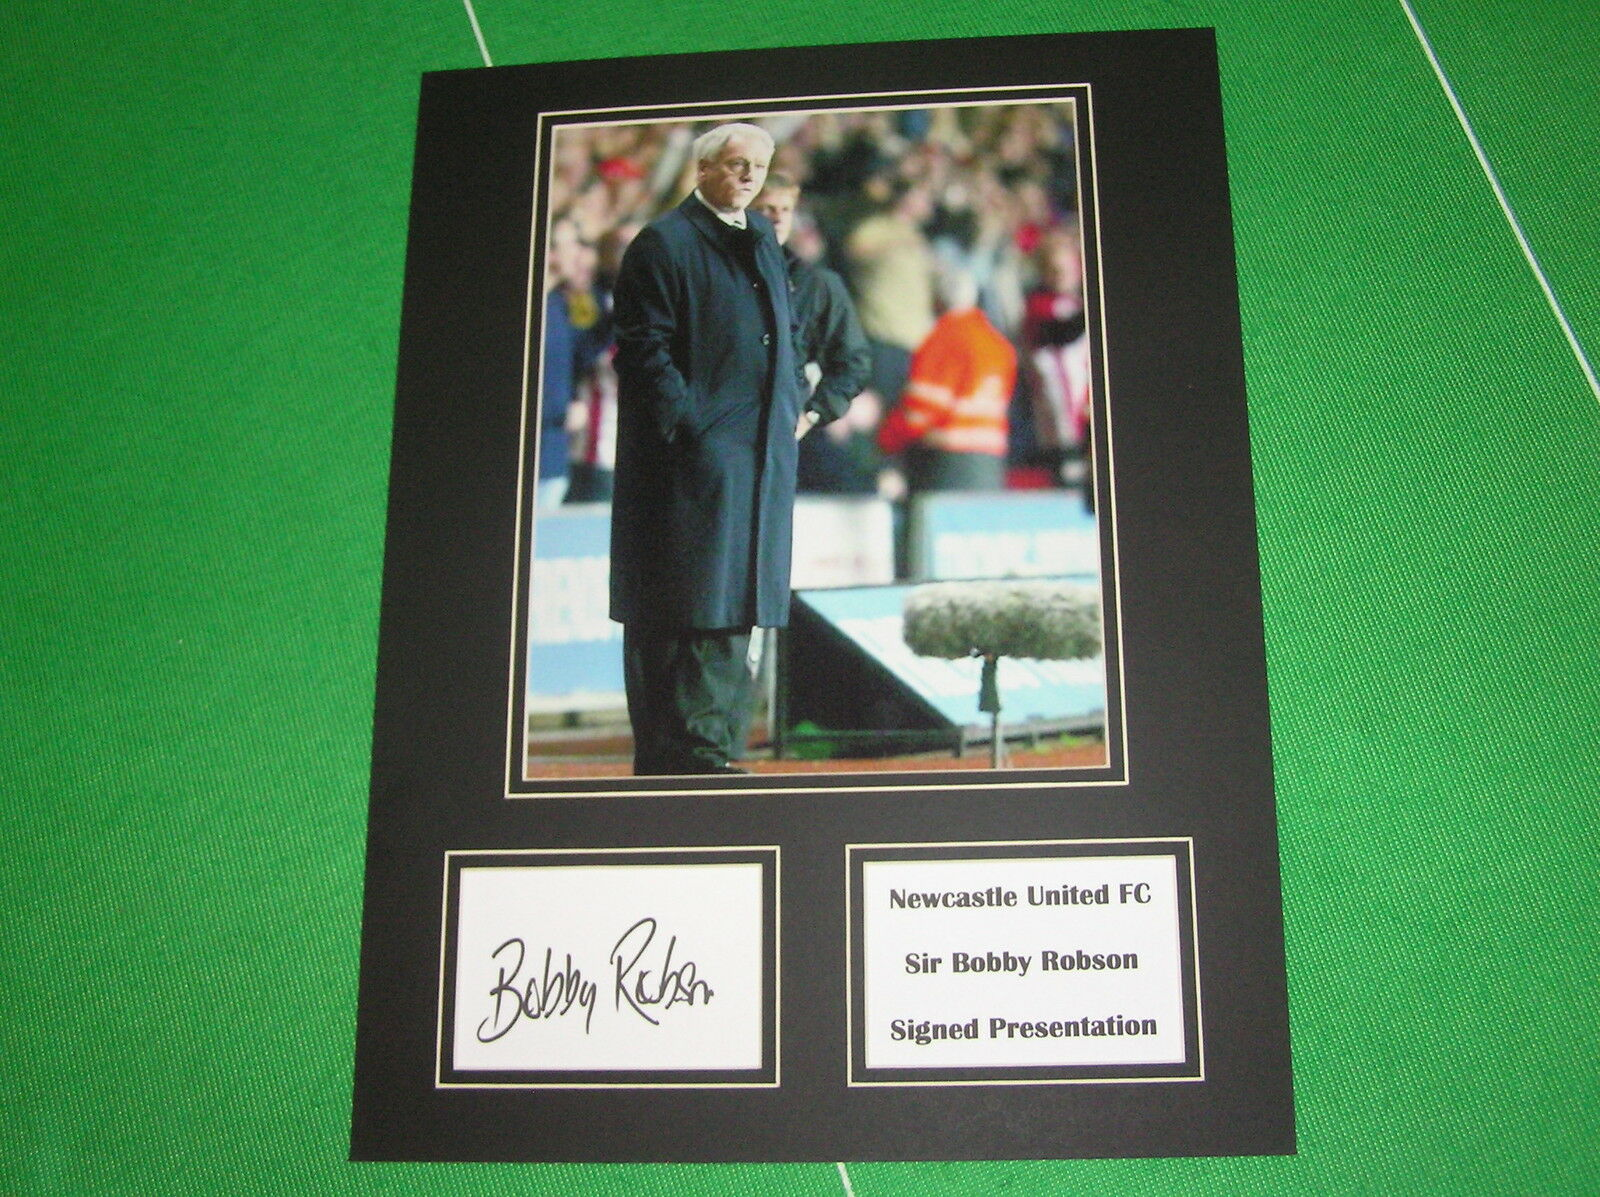 Sir Bobby Robson Robson Robson Signé Newcastle United Presse Photo Présentation Montage 692d7f